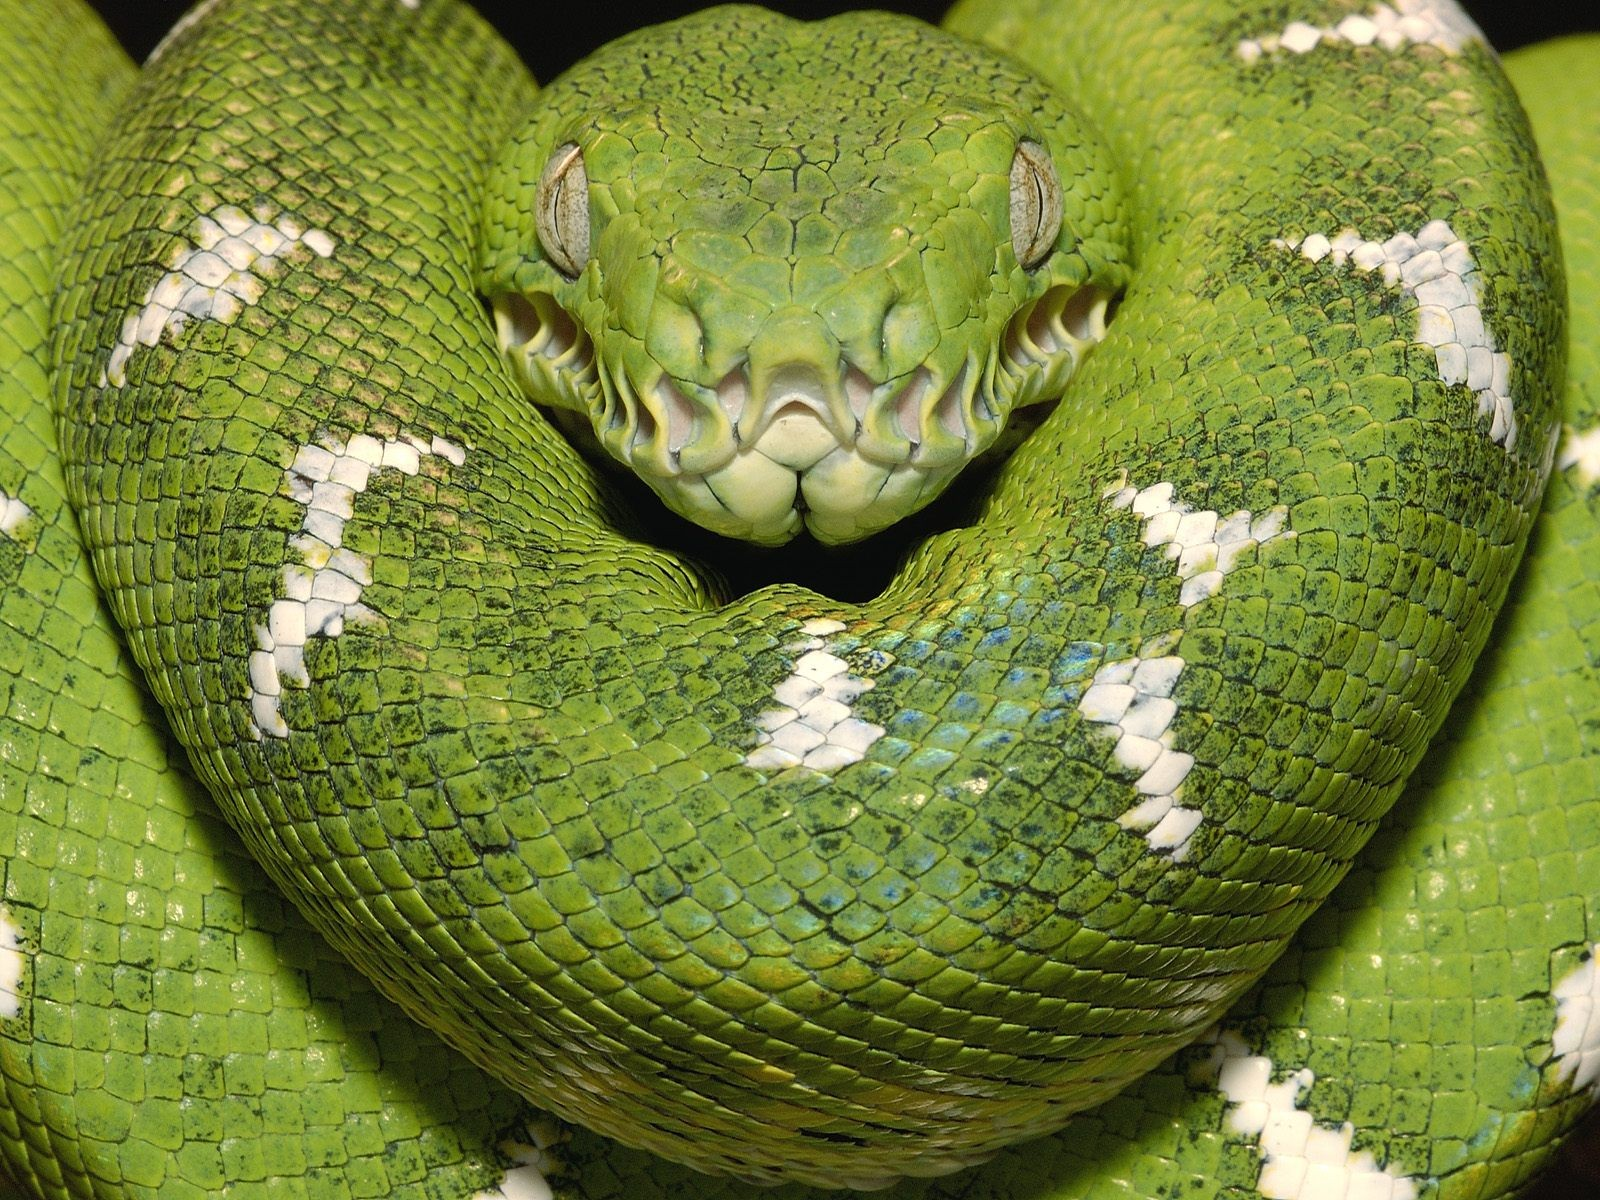 World Most Dangerous Snakes: Top 5 Most Venomous snakes in ...